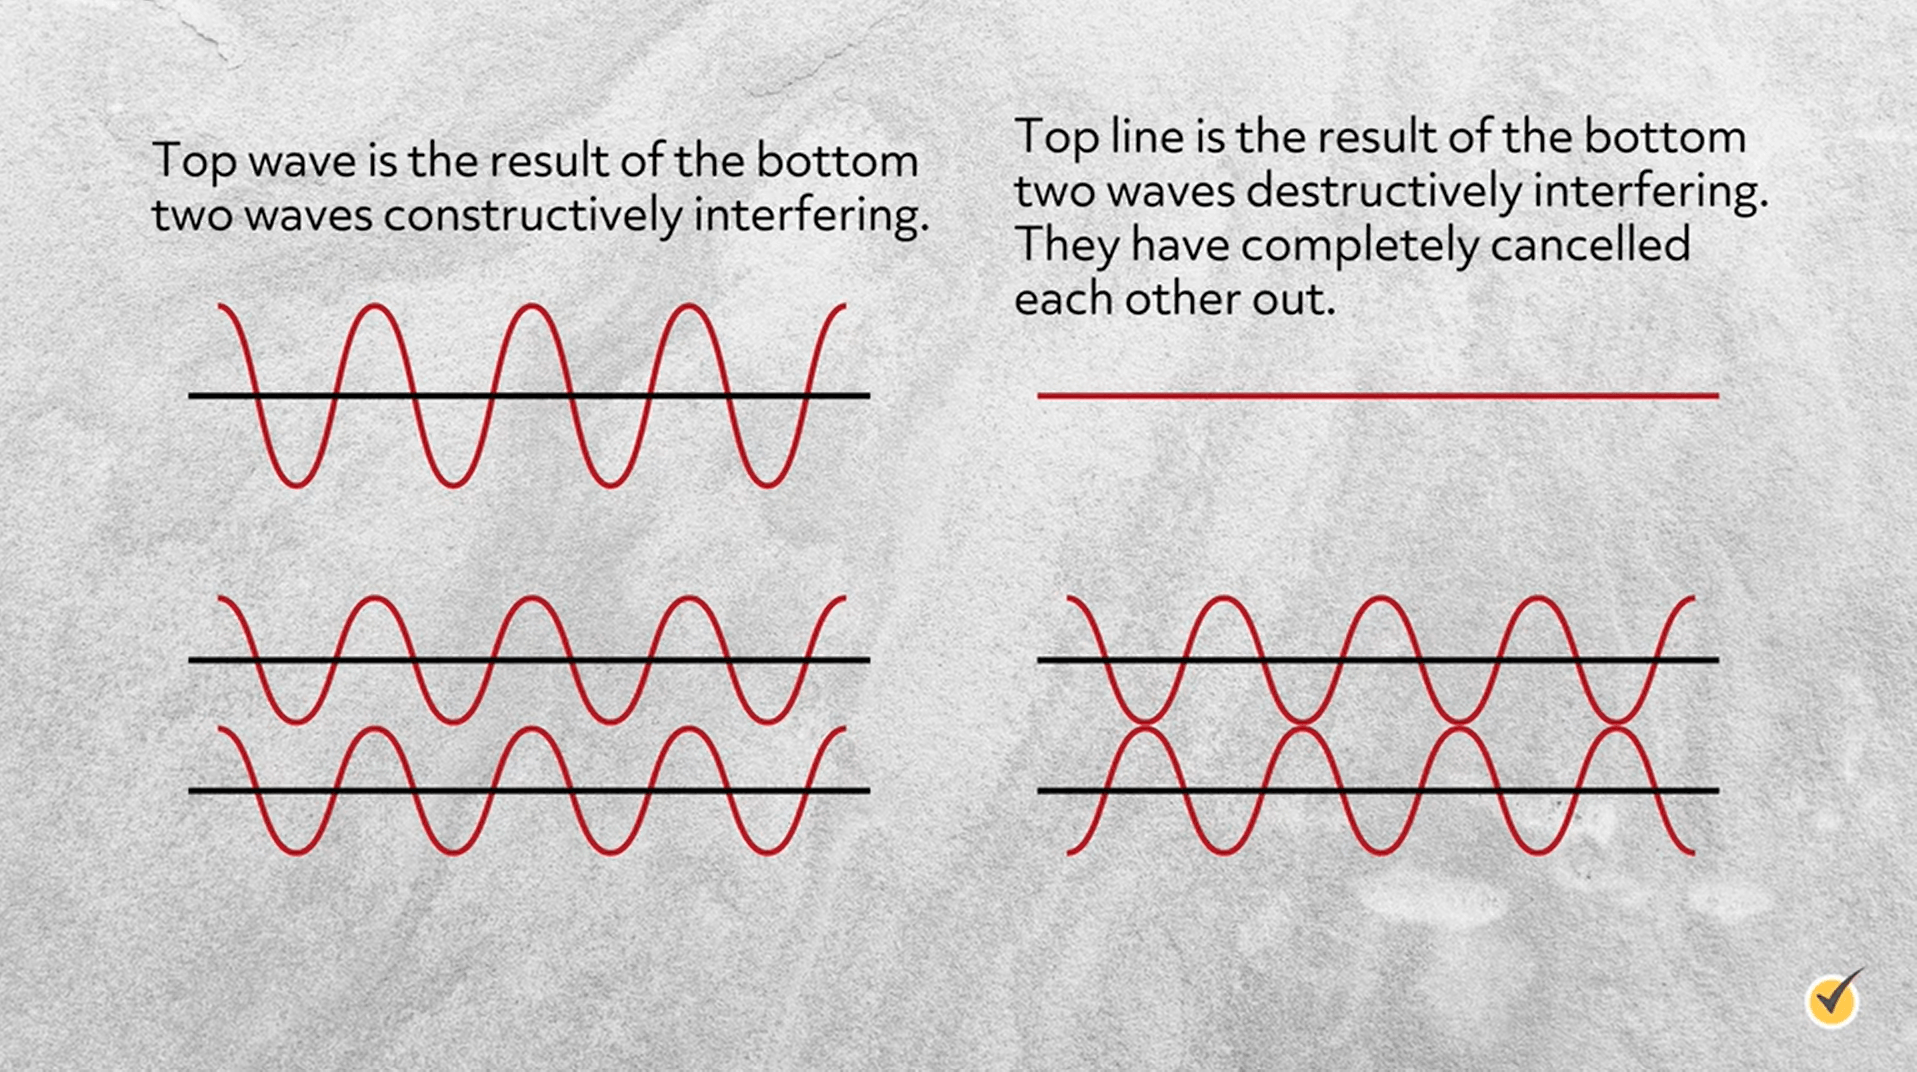 Image of sound waves with three different examples; one has a single sound wave, the second has 2 (the top is the result of the bottom), and another example where 2 waves are destructively interfering and have cancelled each other out